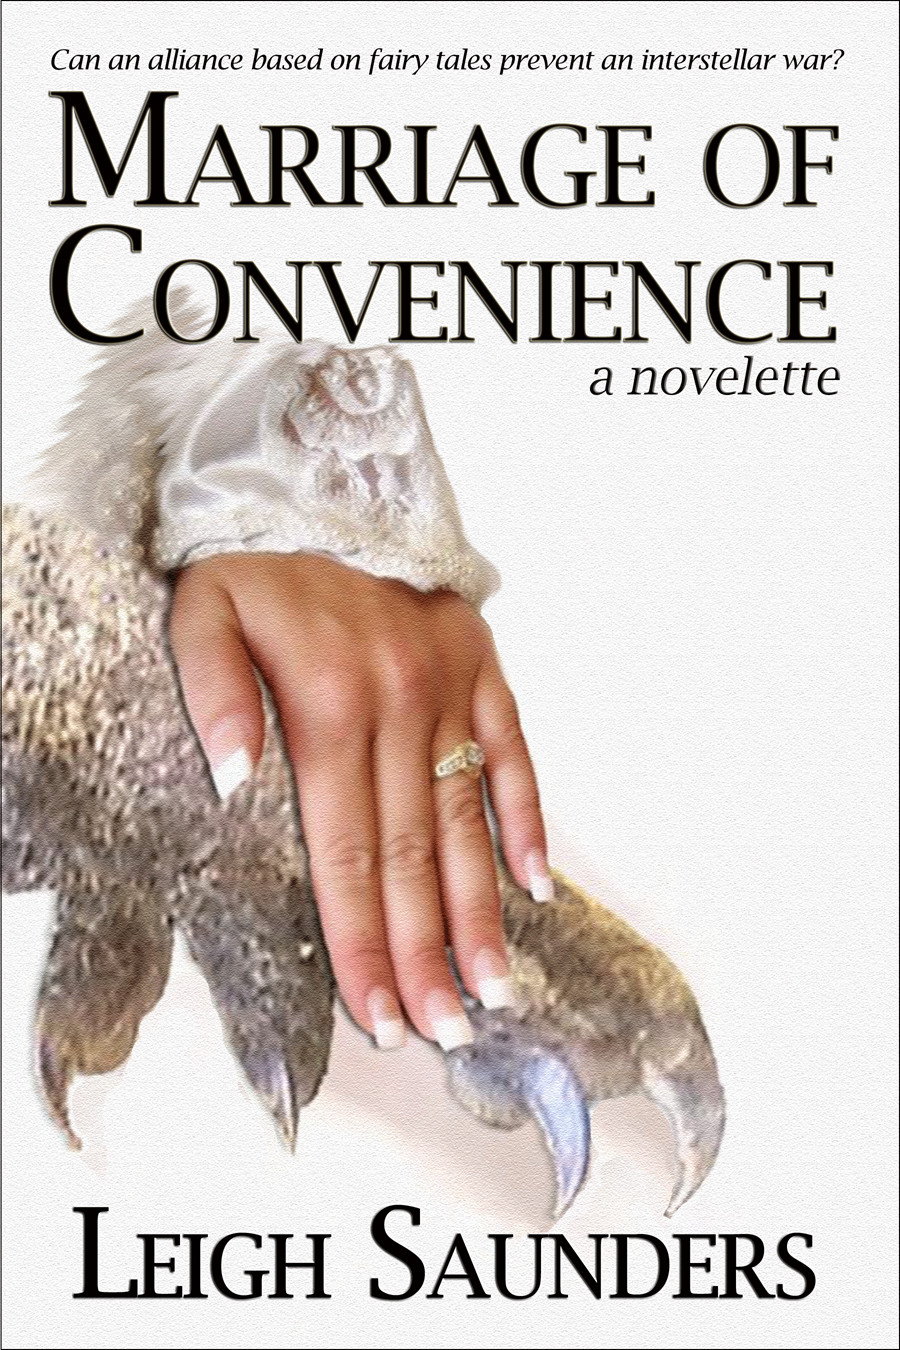 72f665185e0fd Marriage of Convenience, a novelette by Leigh Saunders